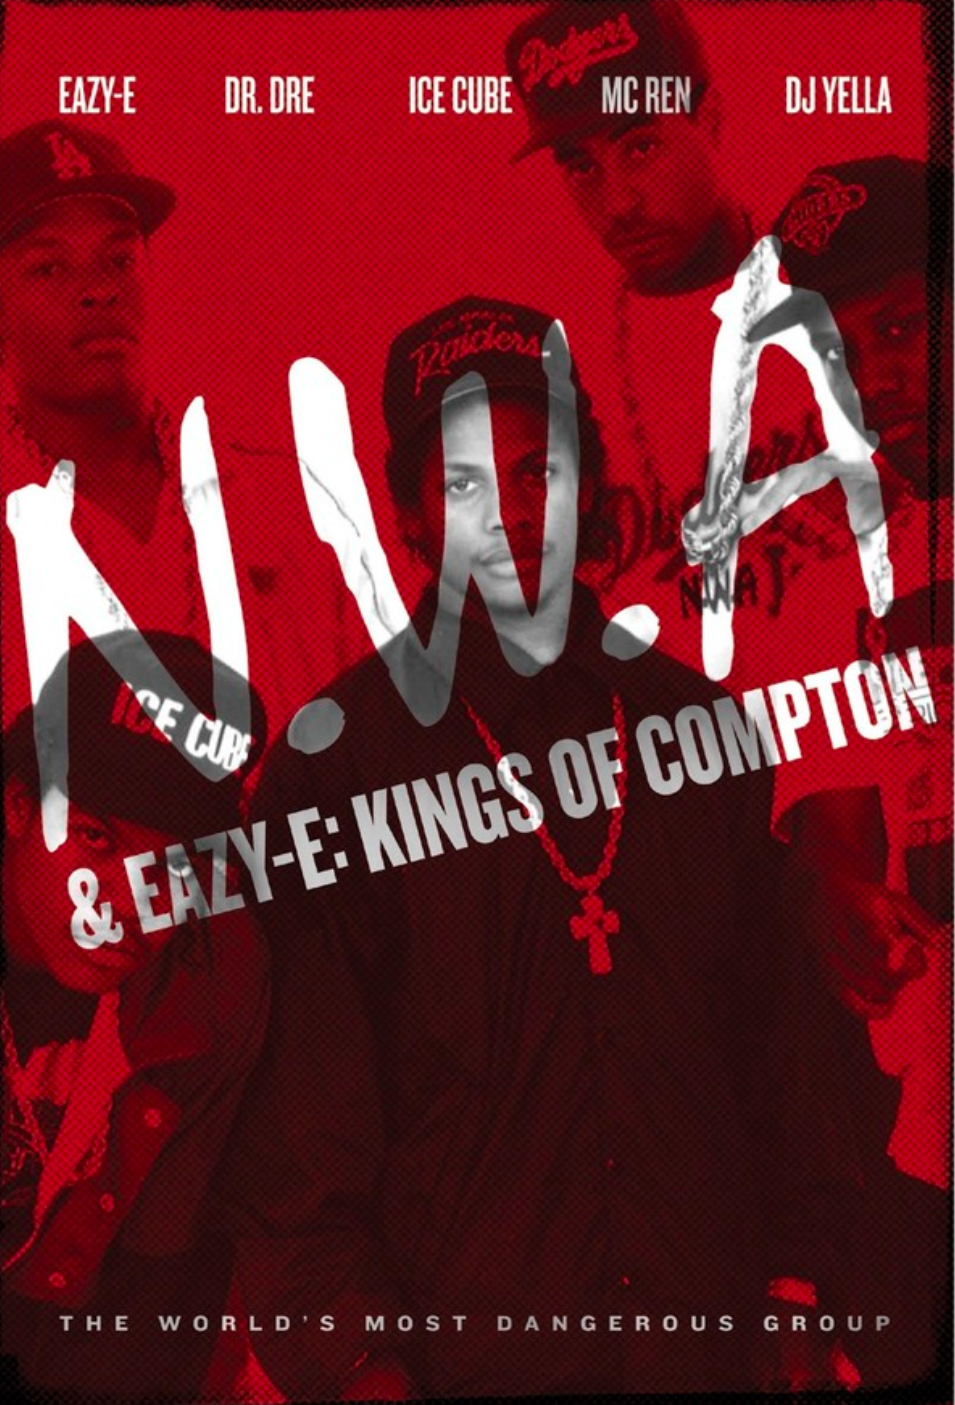 NWA & EAZY-E: KINGS OF COMPTON